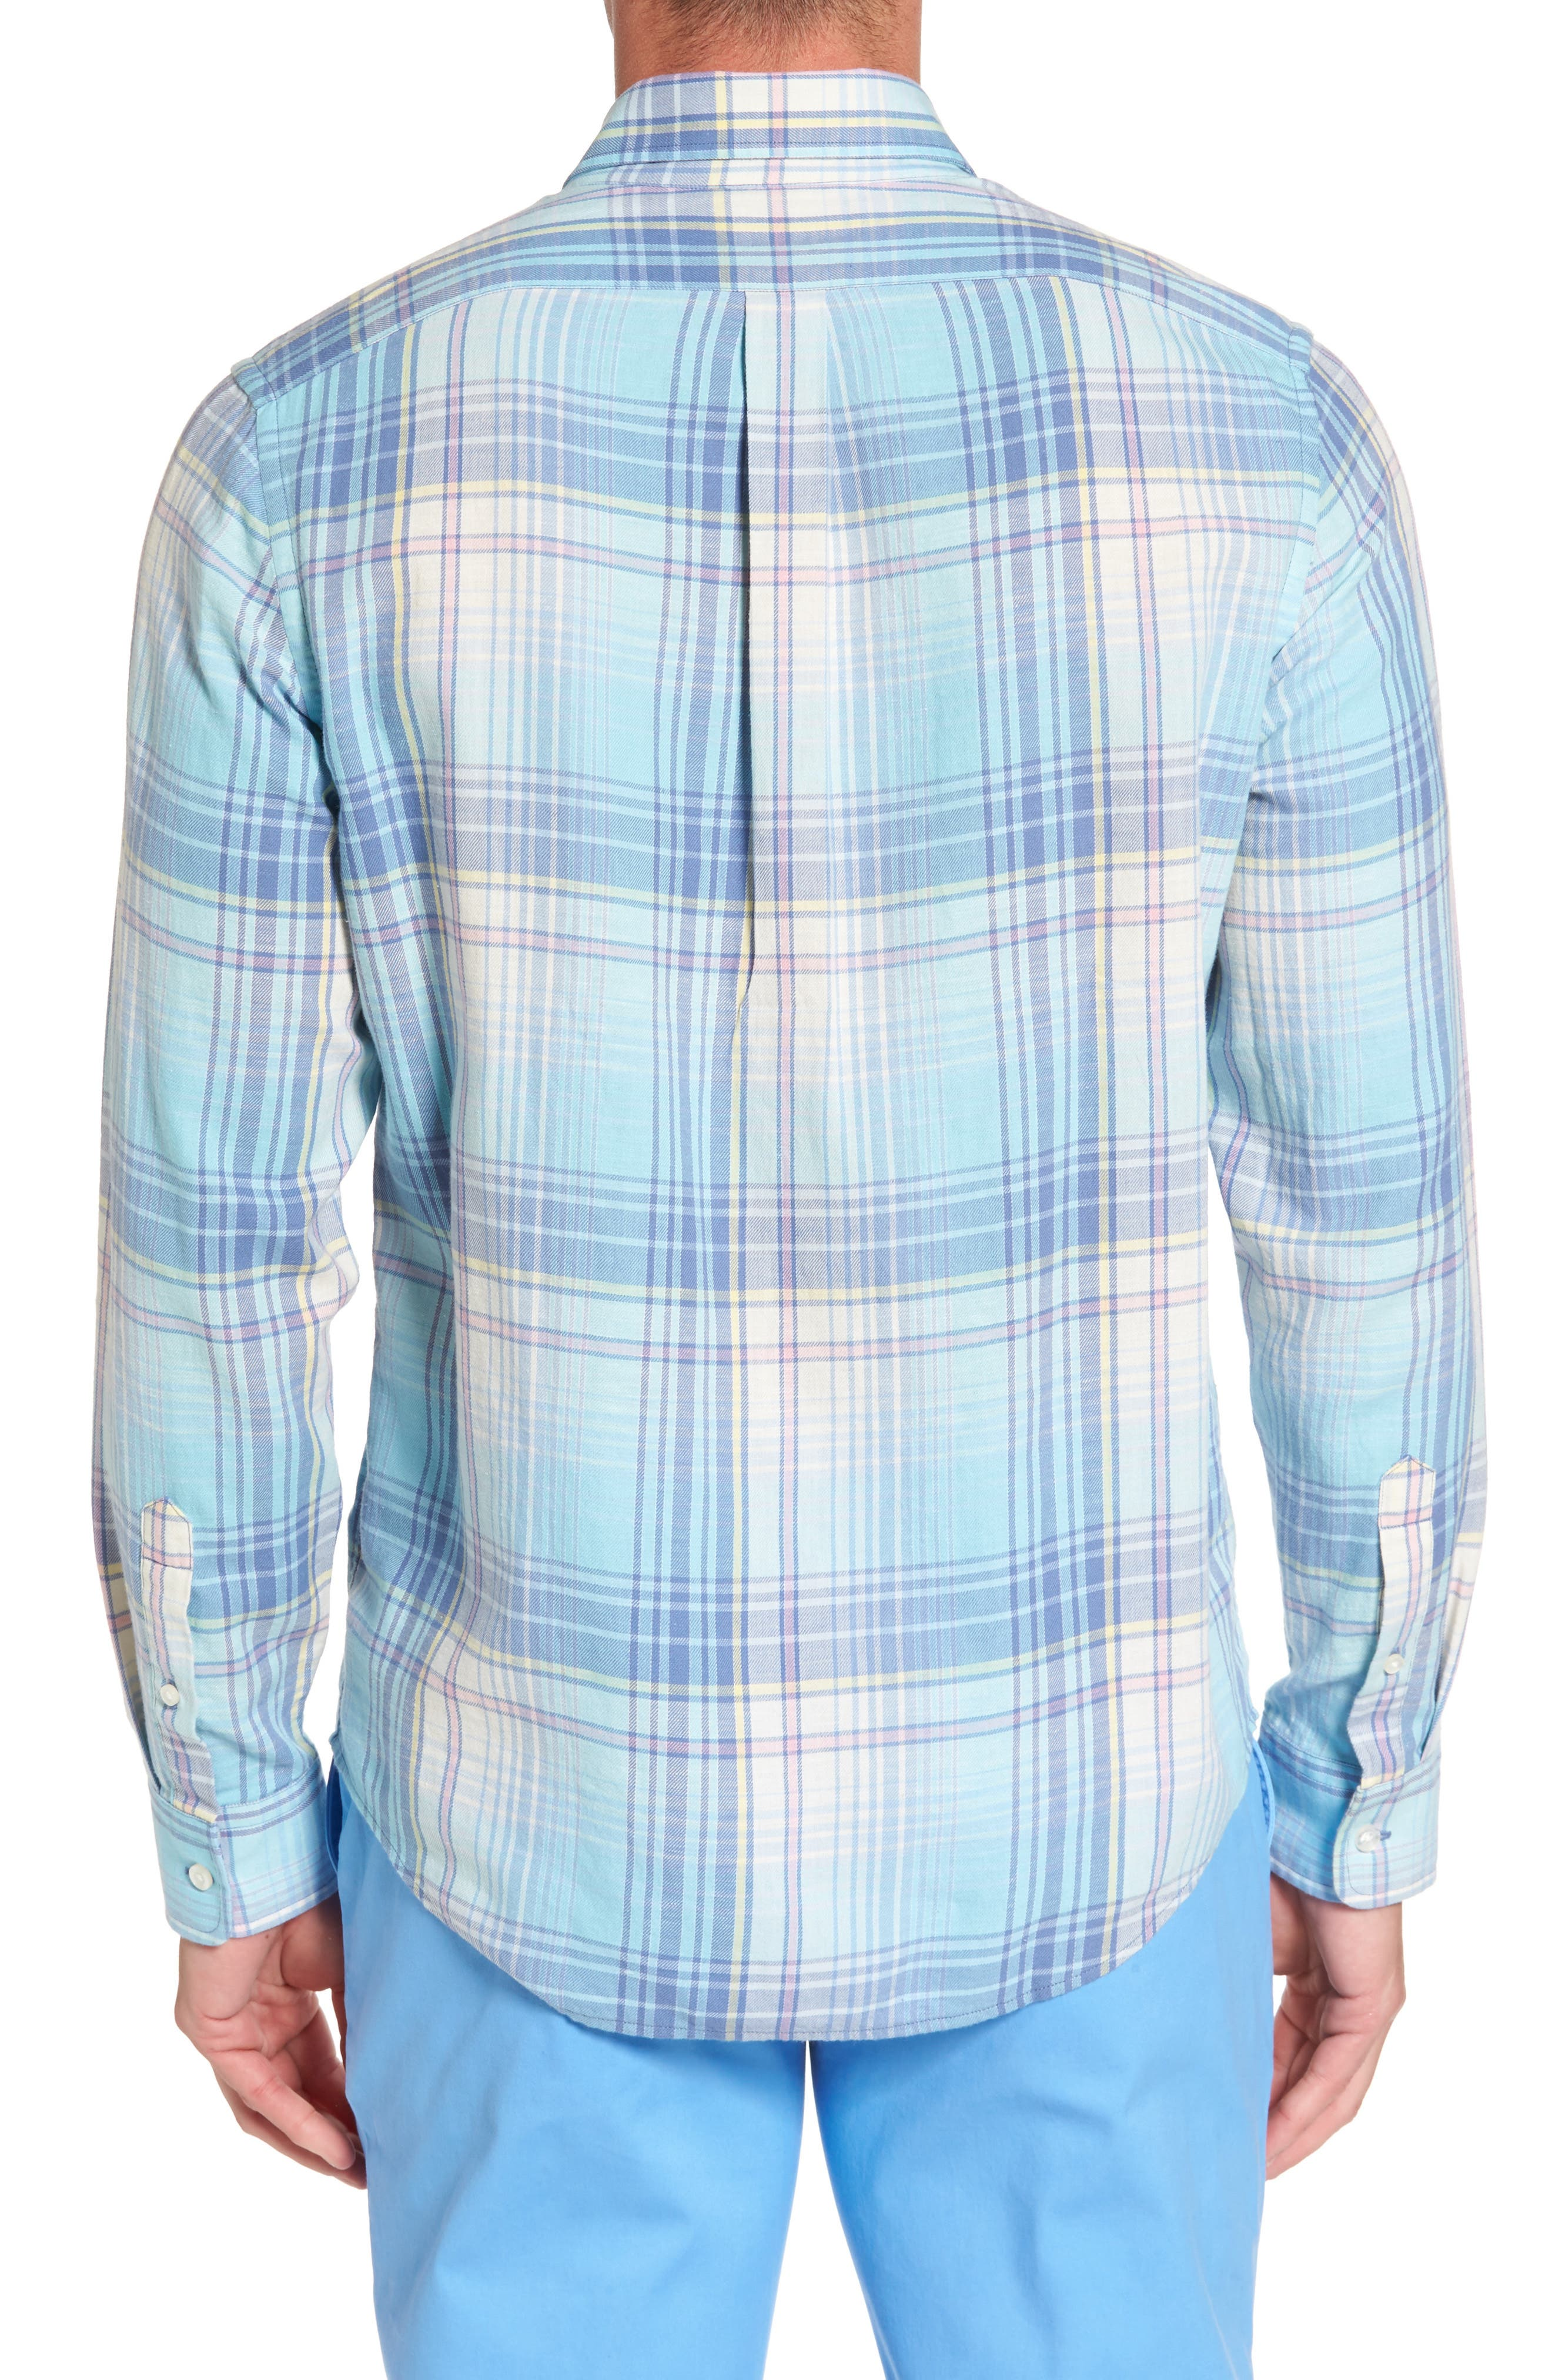 Pequot Plaid Slim Fit Tucker Sport Shirt,                             Alternate thumbnail 2, color,                             435